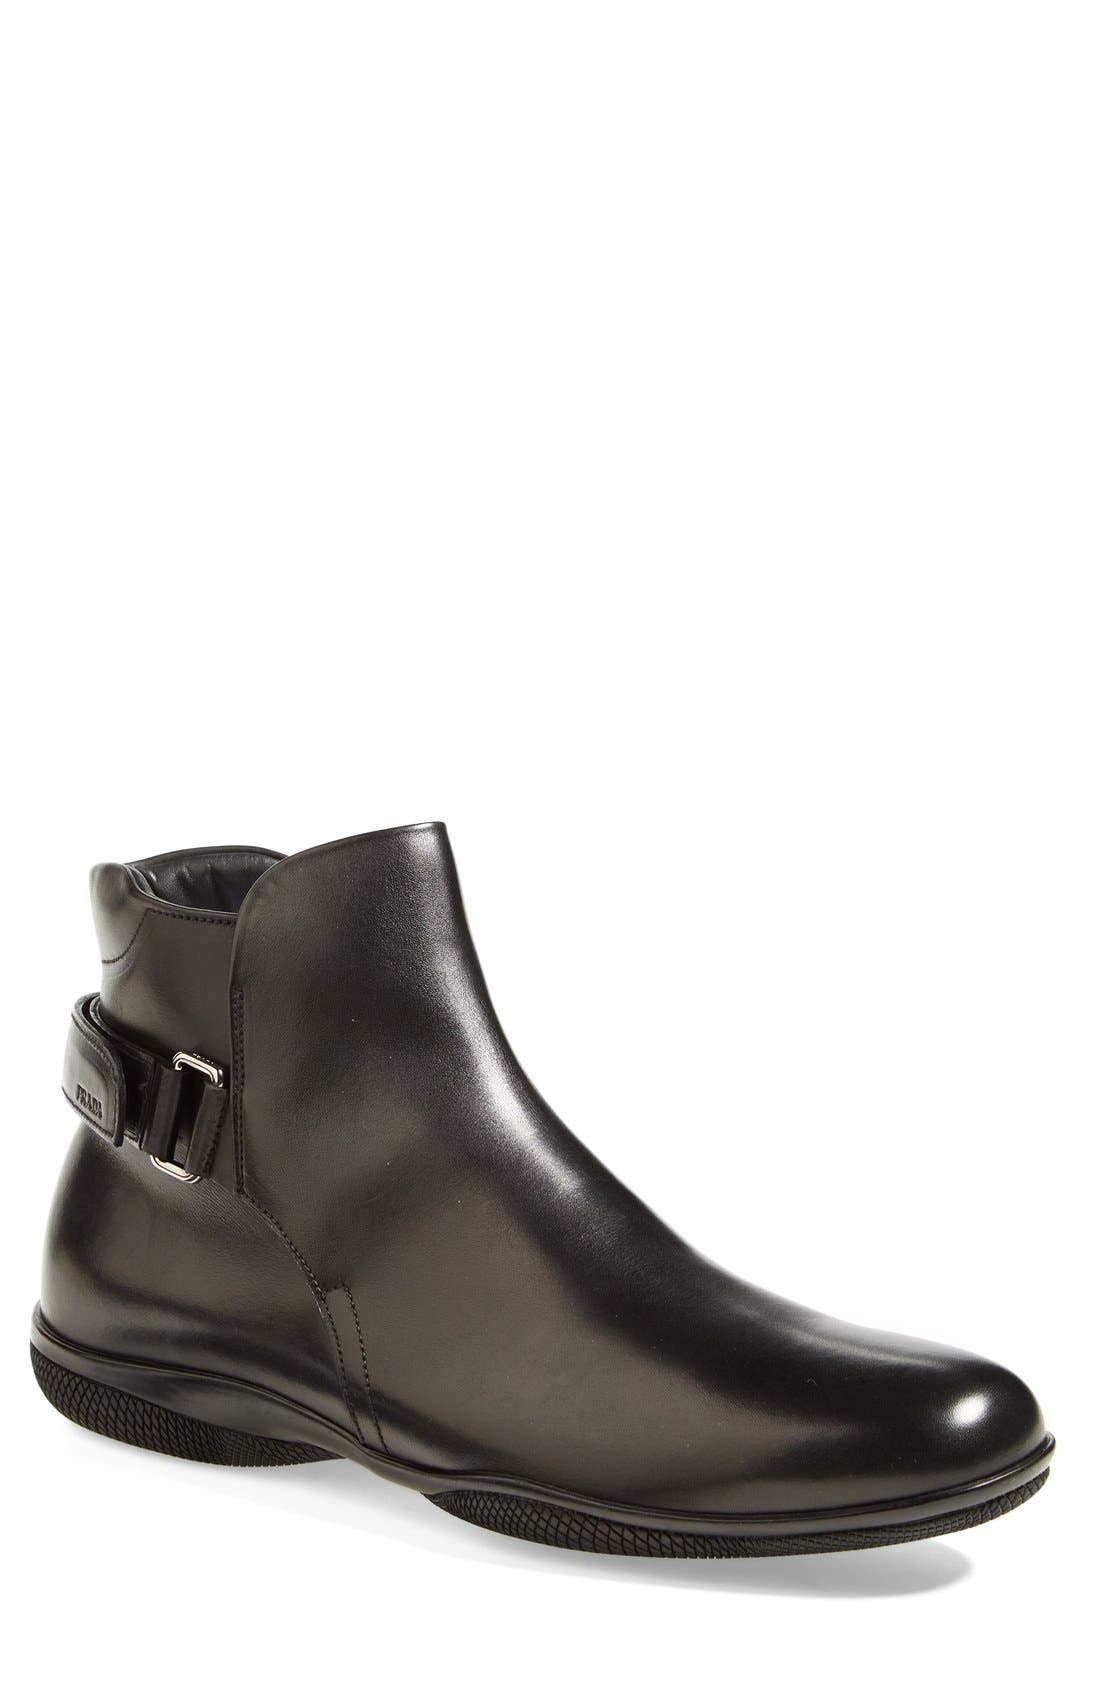 Alternate Image 1 Selected - Prada 'Toblak' Plain Toe Boot (Men)